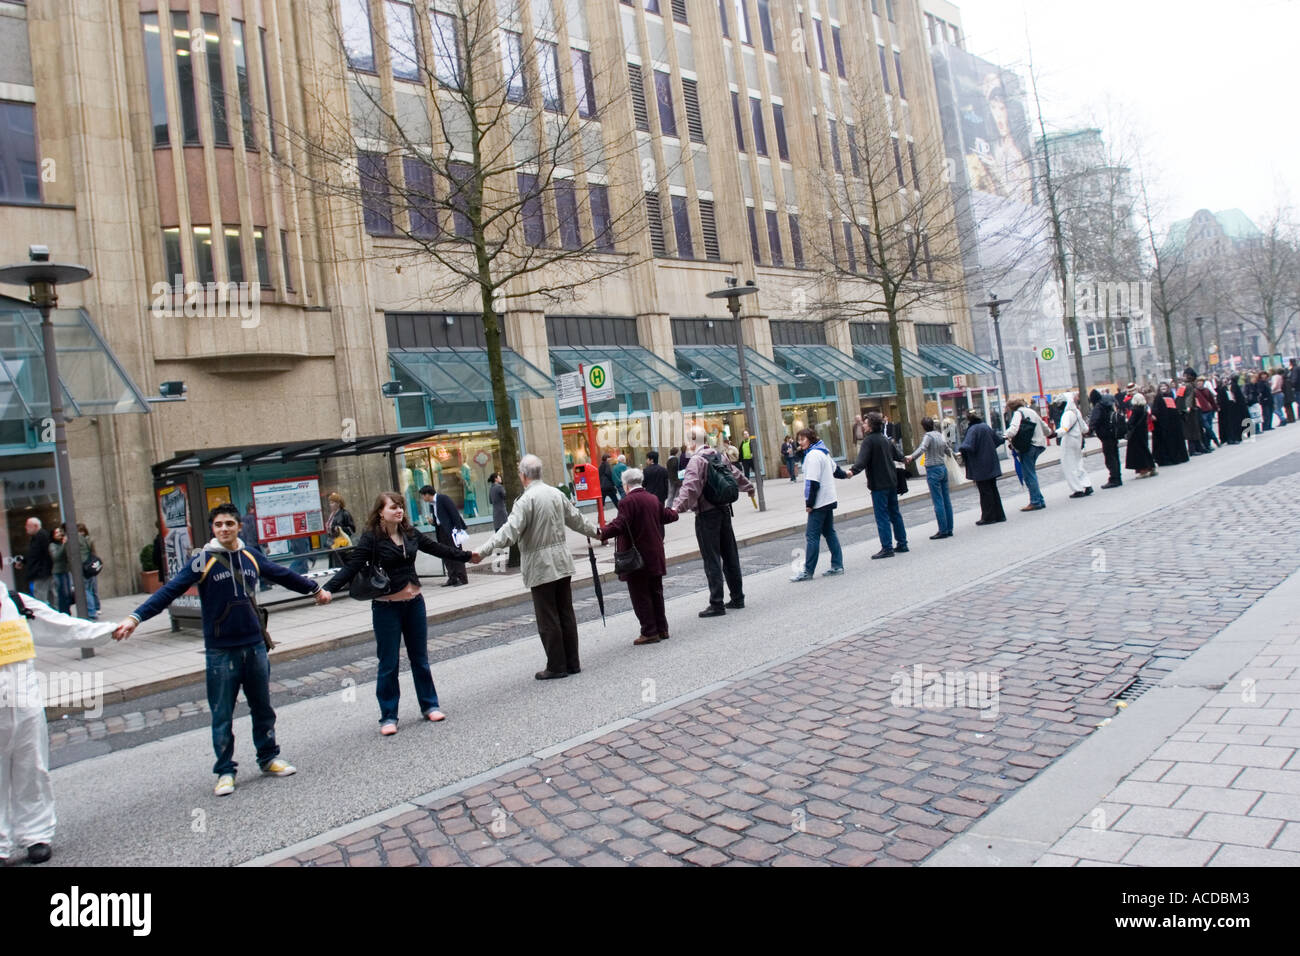 Chernobyl 20th anniversary human chain in street Hamburg Germany 2006 - Stock Image